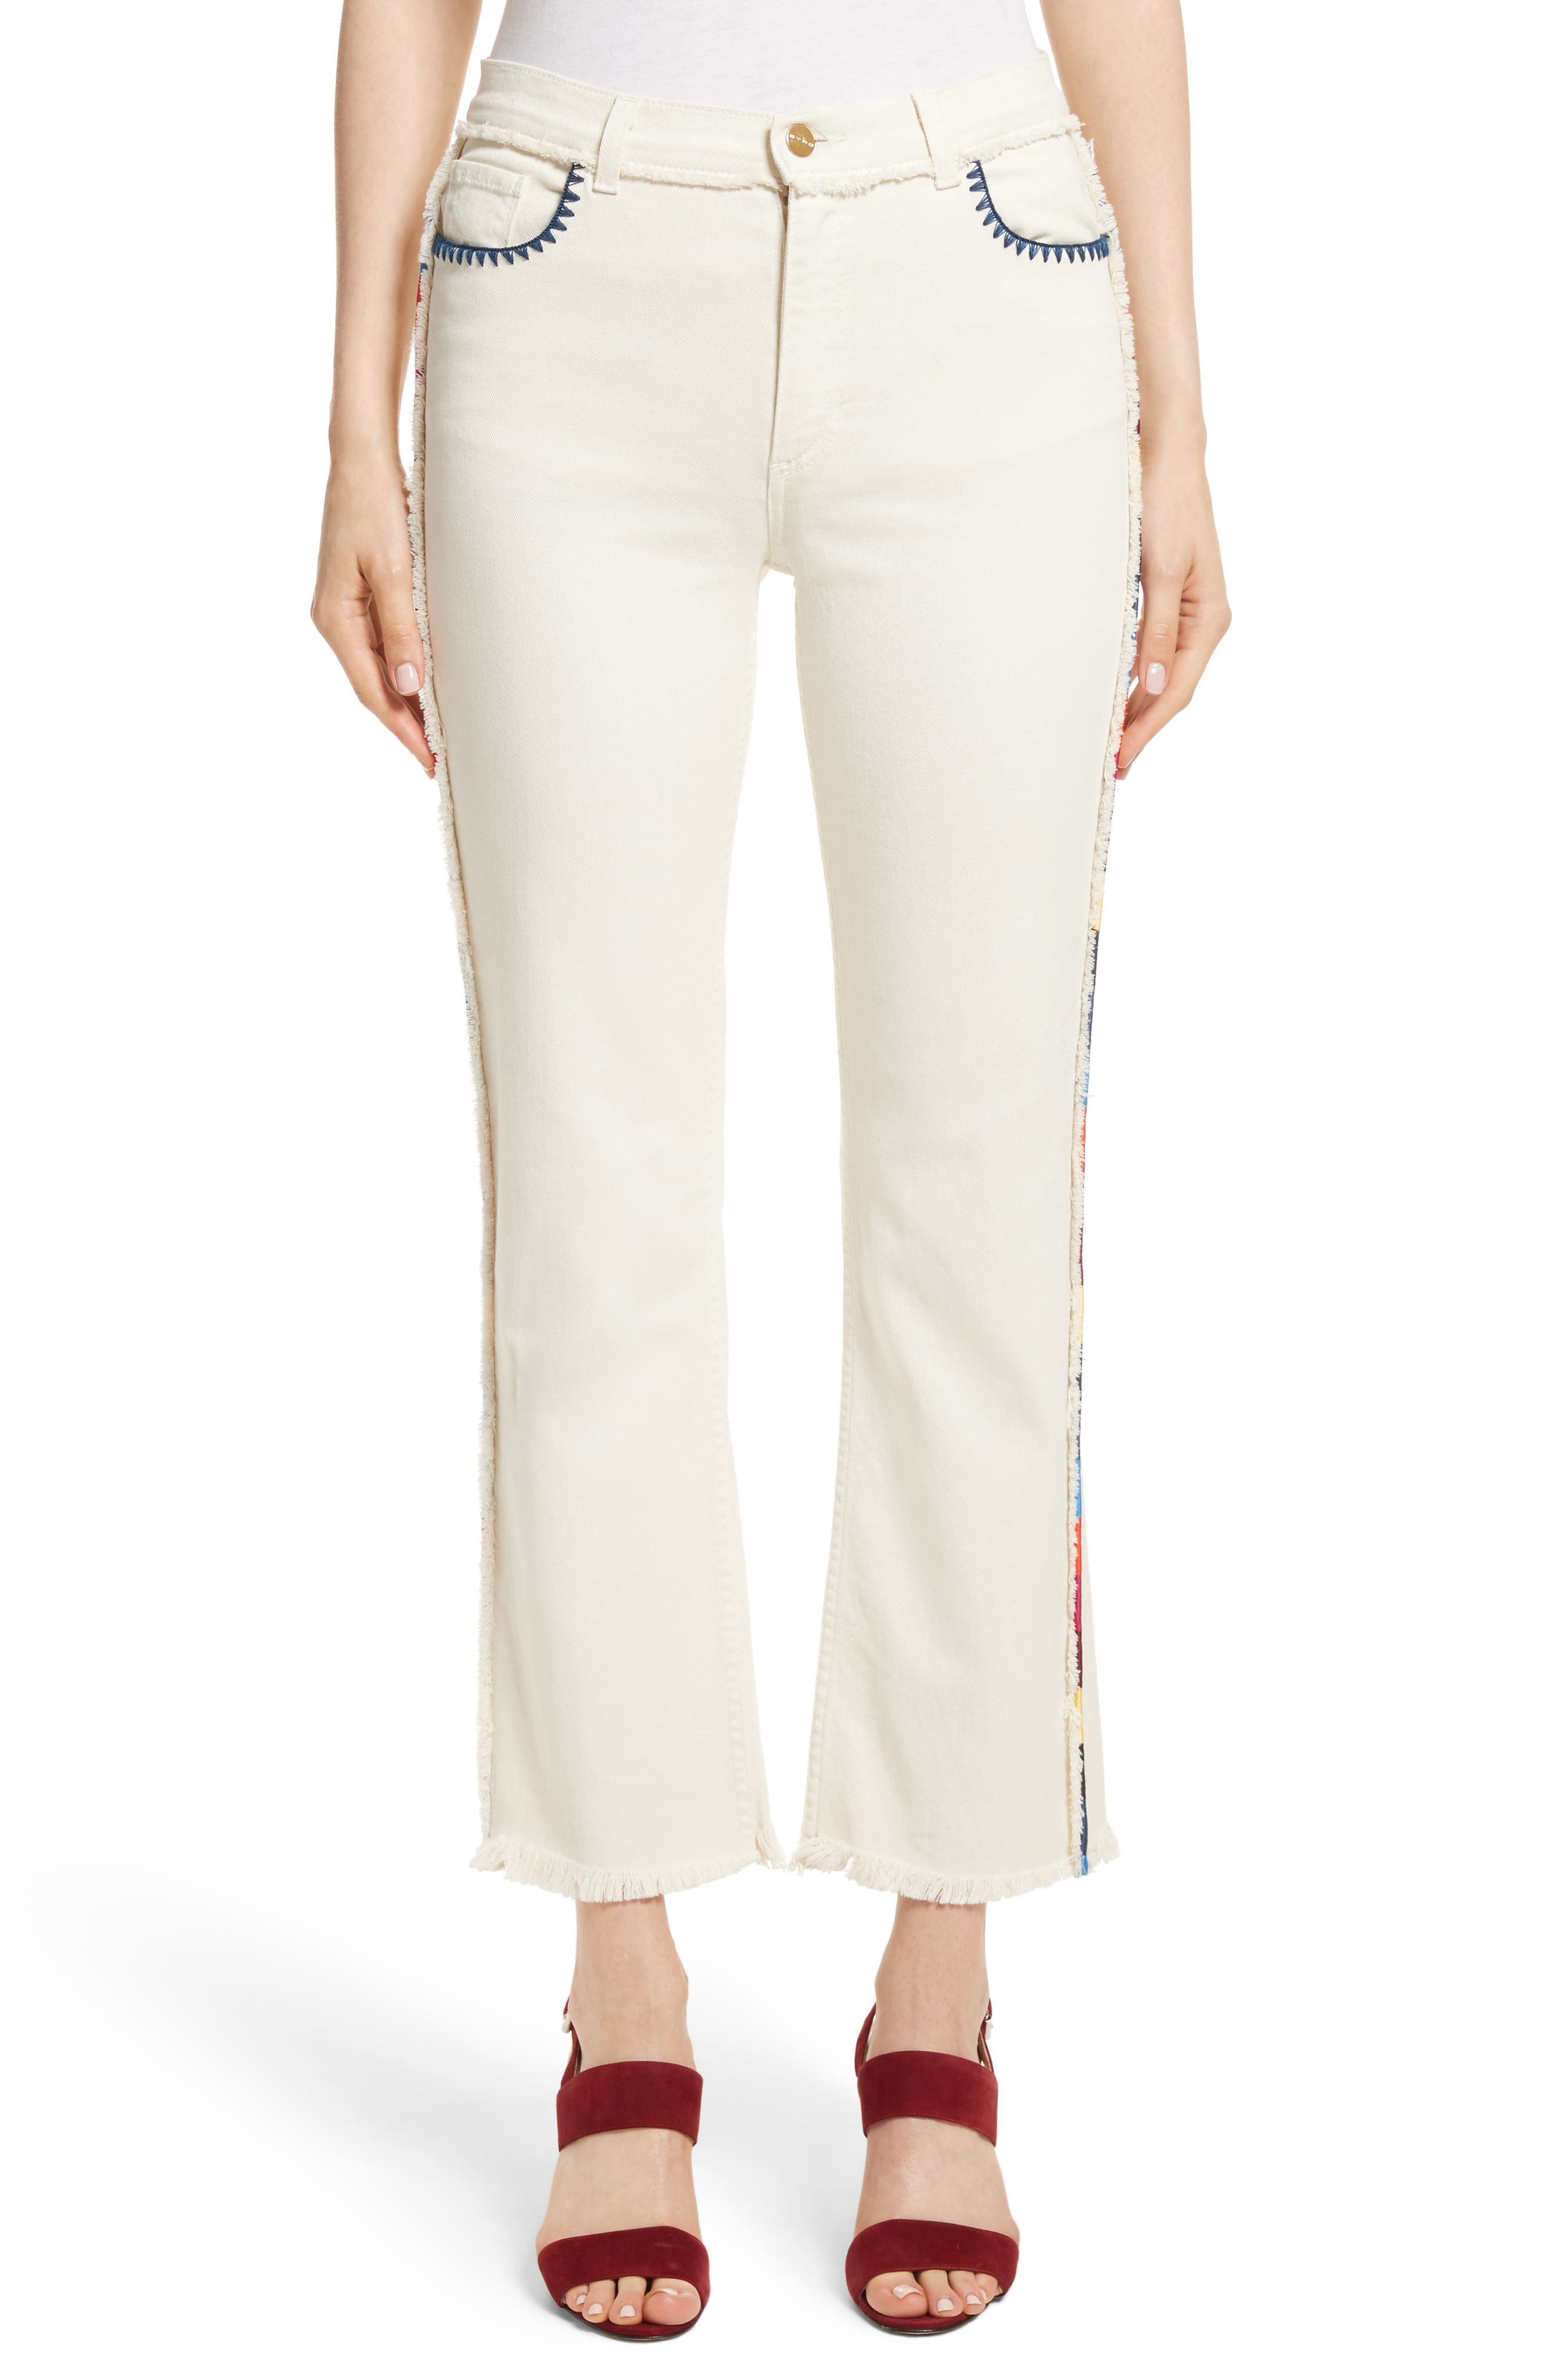 Alternate Image 1 Selected - Etro Embroidered Piping Crop Jeans